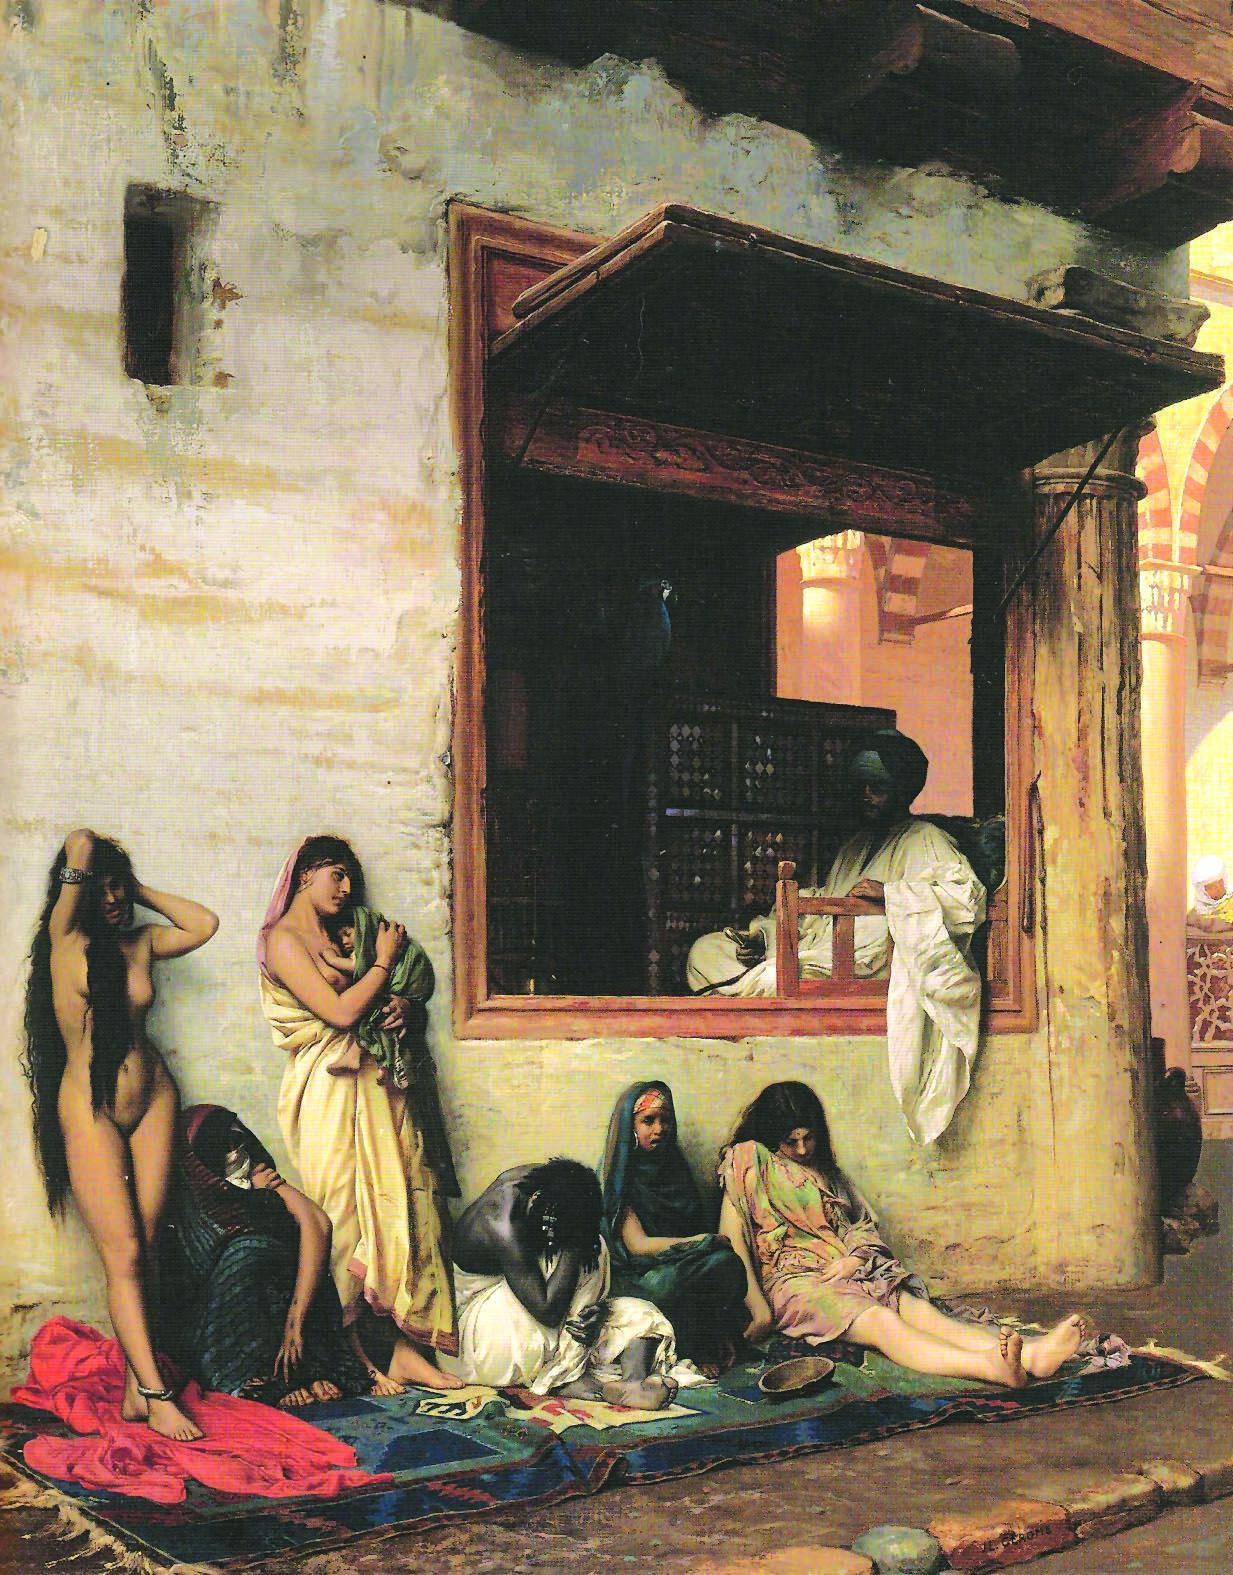 Prostitution in the Ottoman Empire